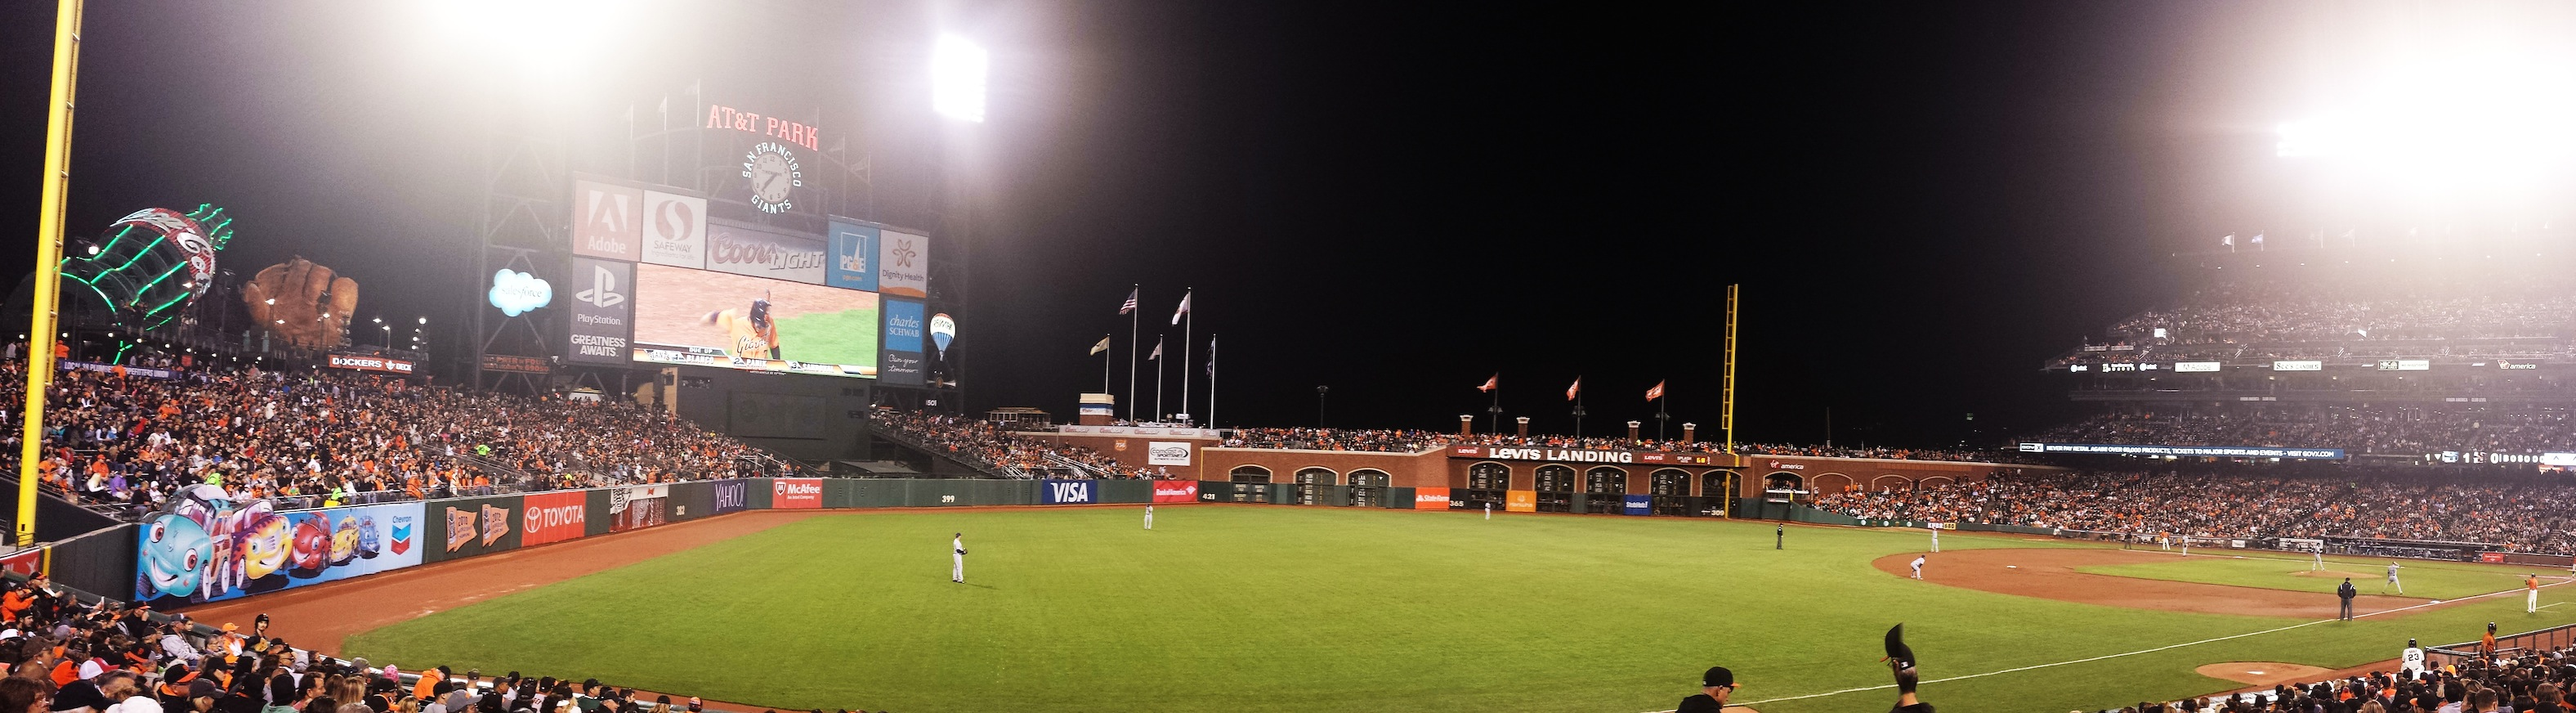 Giants AT&T Park